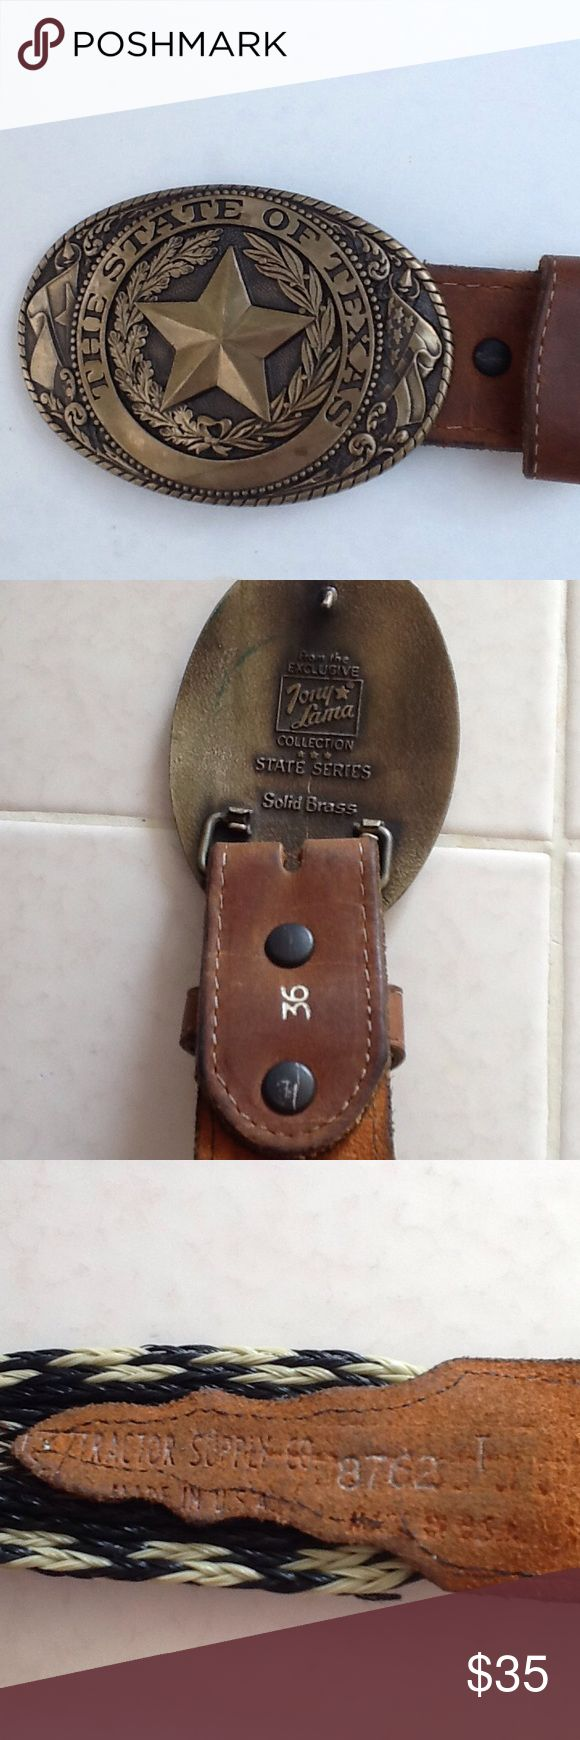 TONY LAMA TEXAS BELT AND BUCKLE 🐎 VINTAGE A vintage trophy belt from Ole' Texas Tractor Company.  Registered and numbered as to authenticity.  Unusual and in good condition.  Belt is of hemp and leather. Accessories Belts